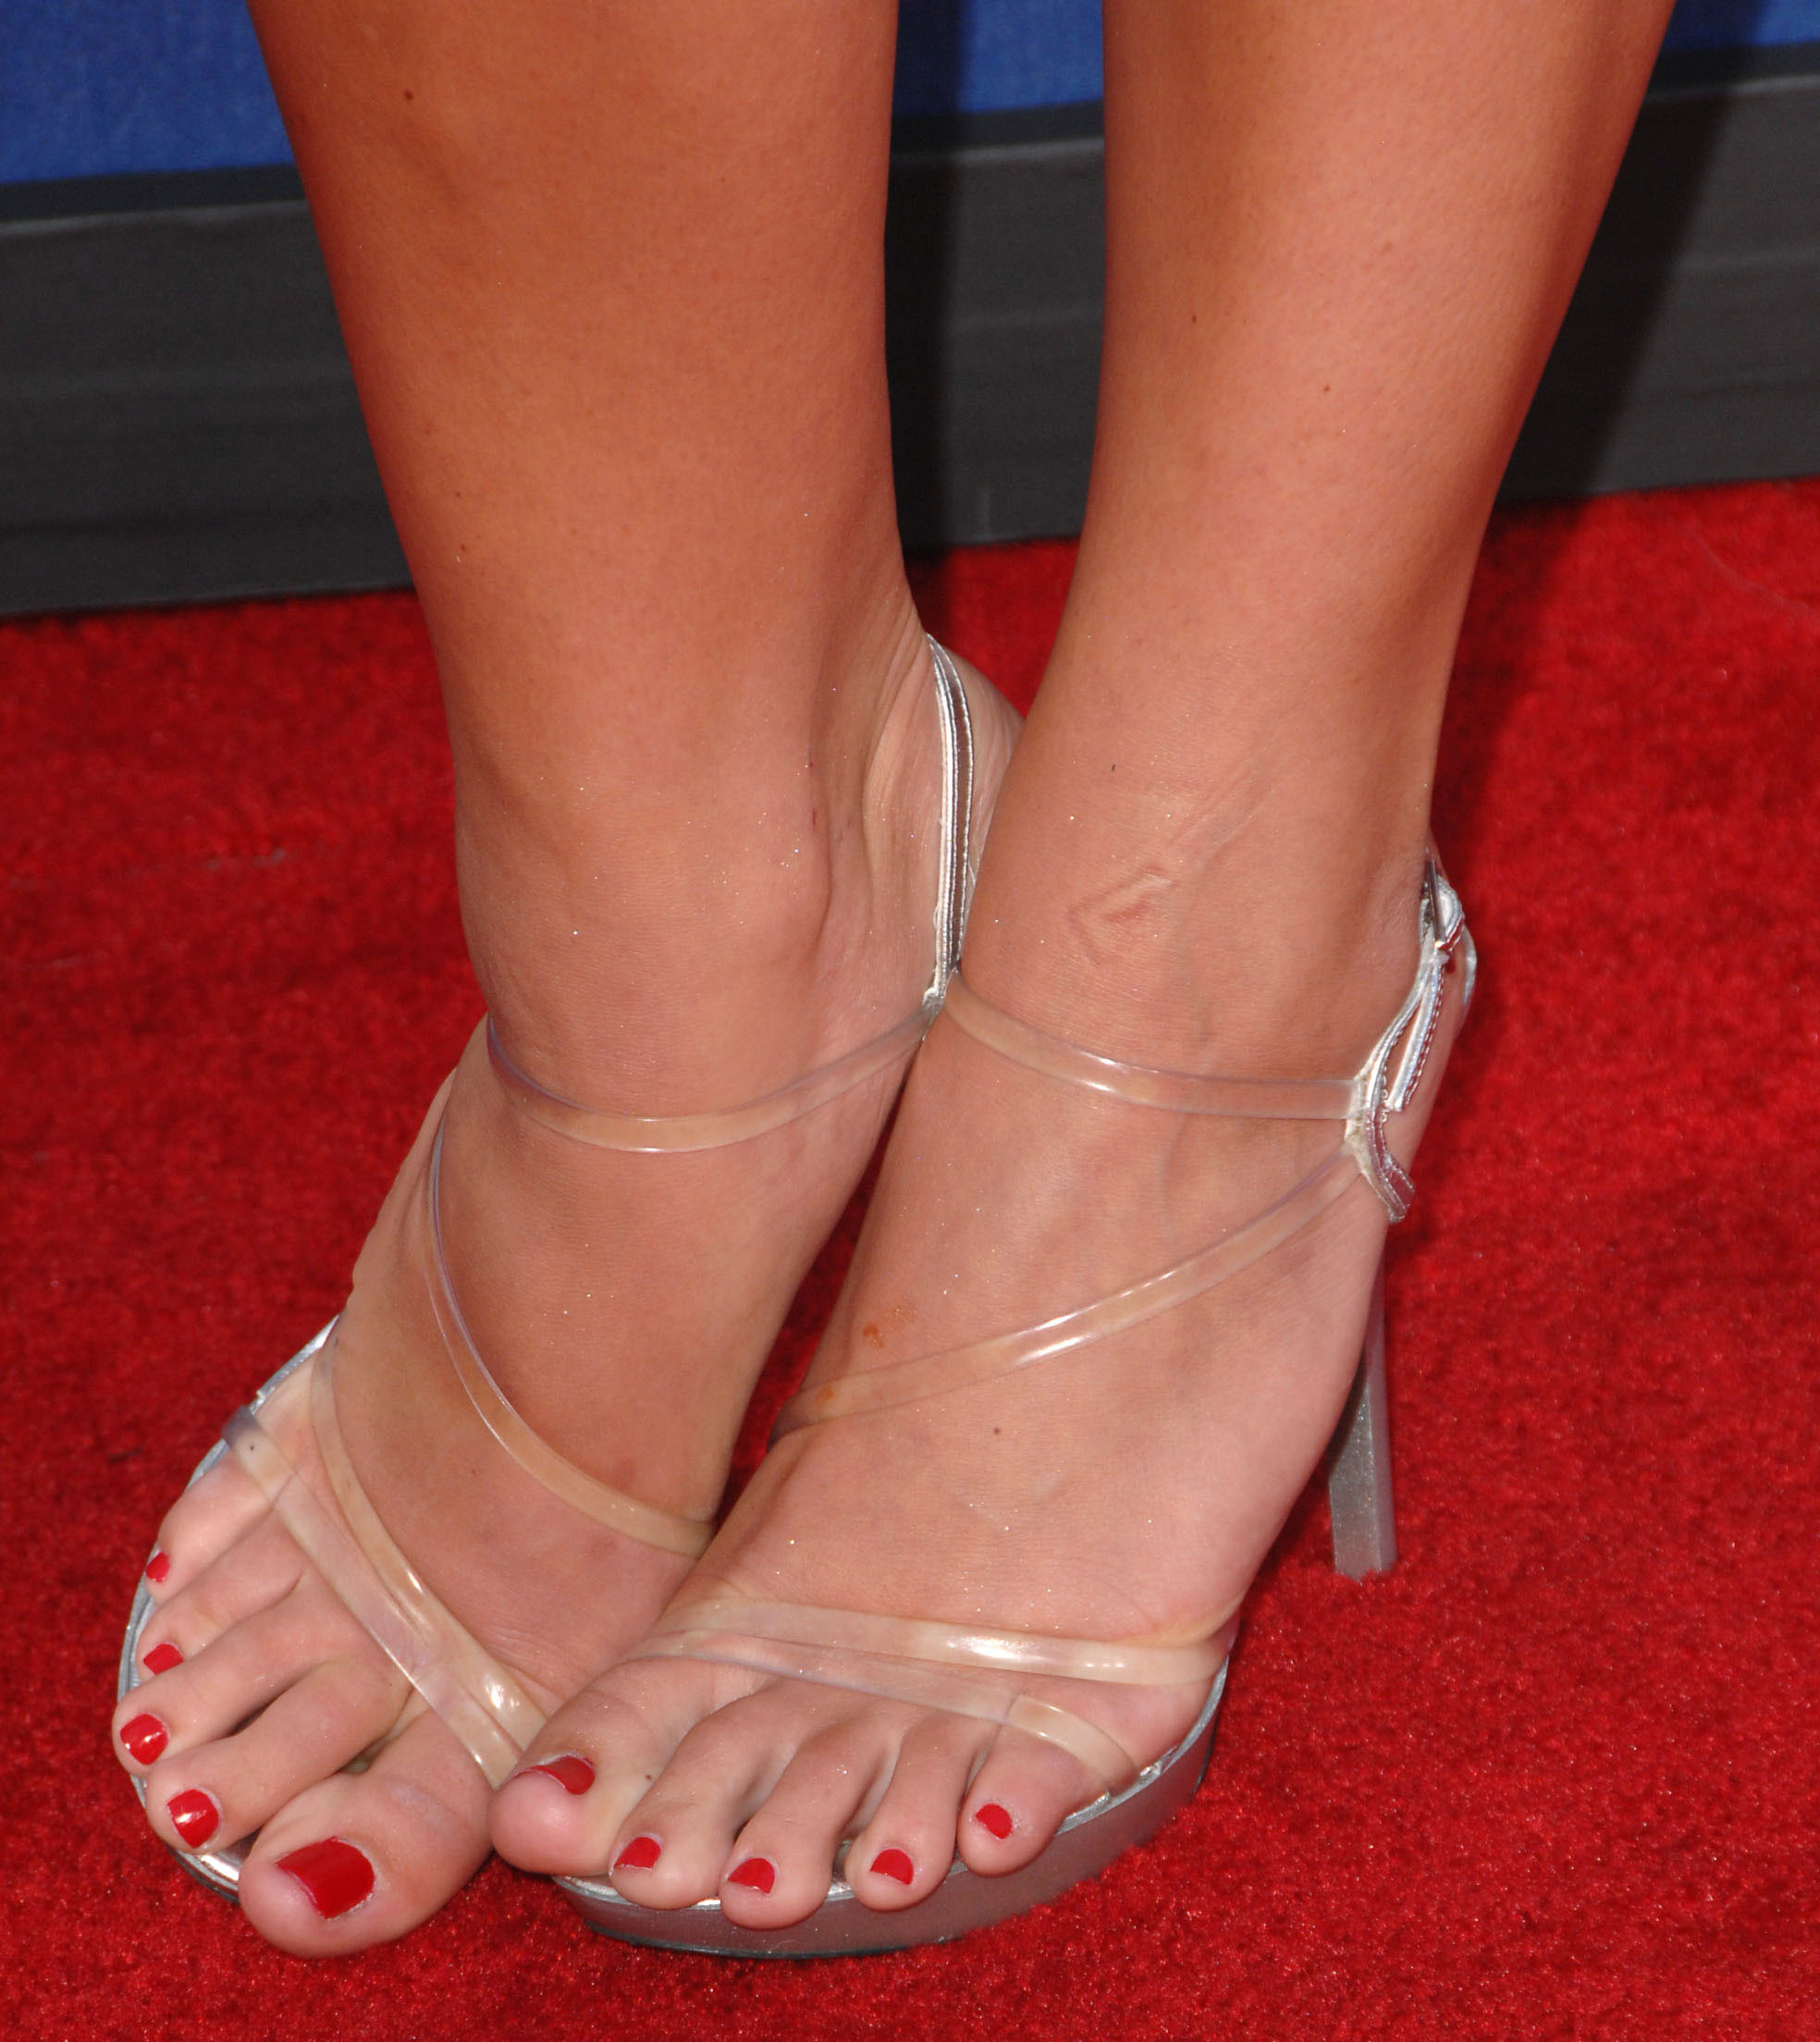 Brooke hogan feet